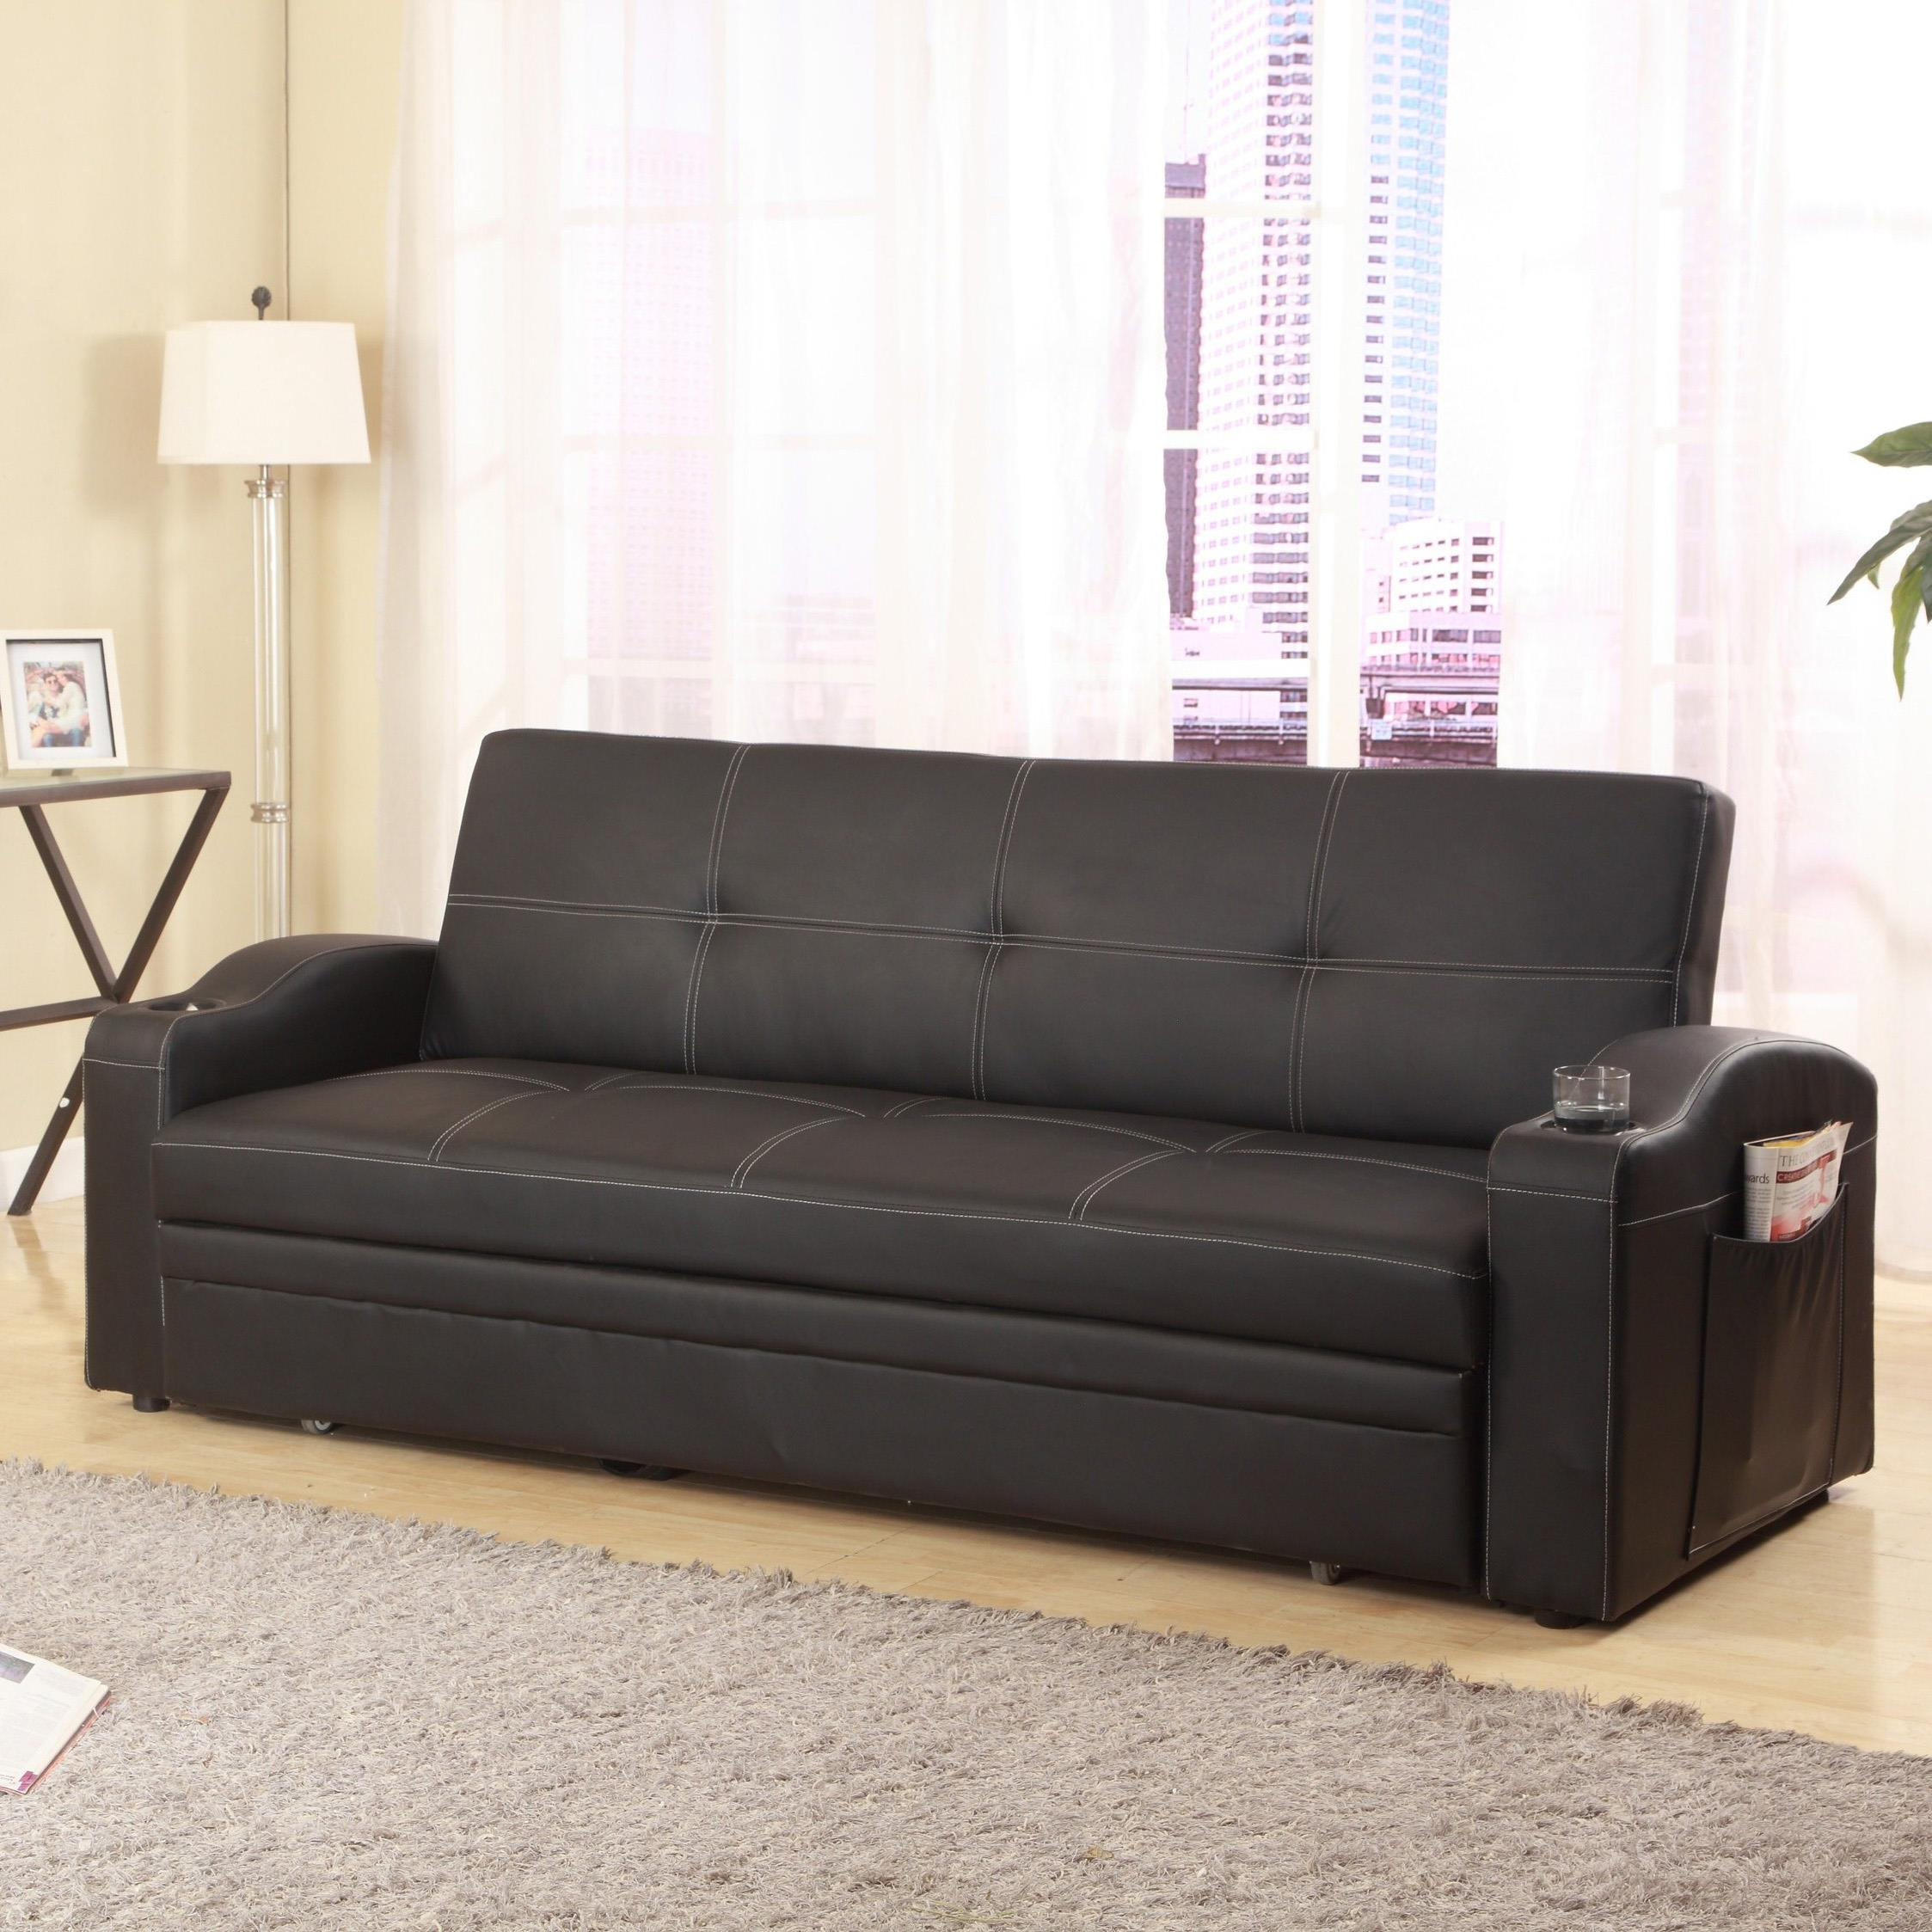 5310 Easton Adjustable Sofa by Crown Mark at Wilcox Furniture